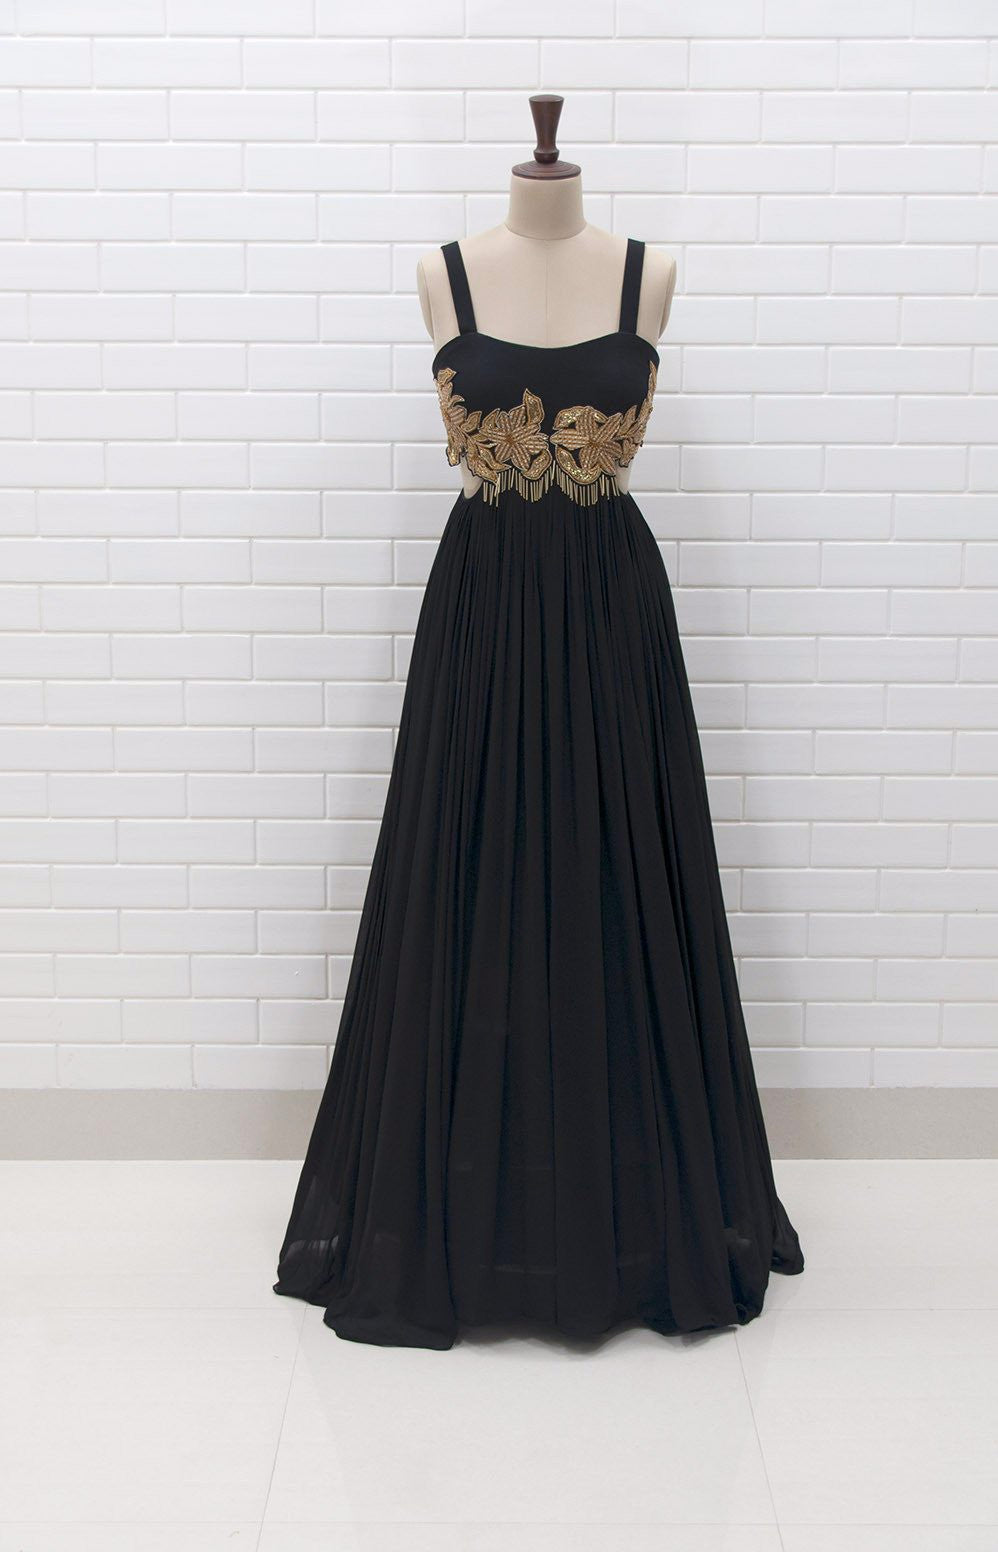 MARIELLA : Black Sleeveless Waist cut-out Gown with Zardozi ...